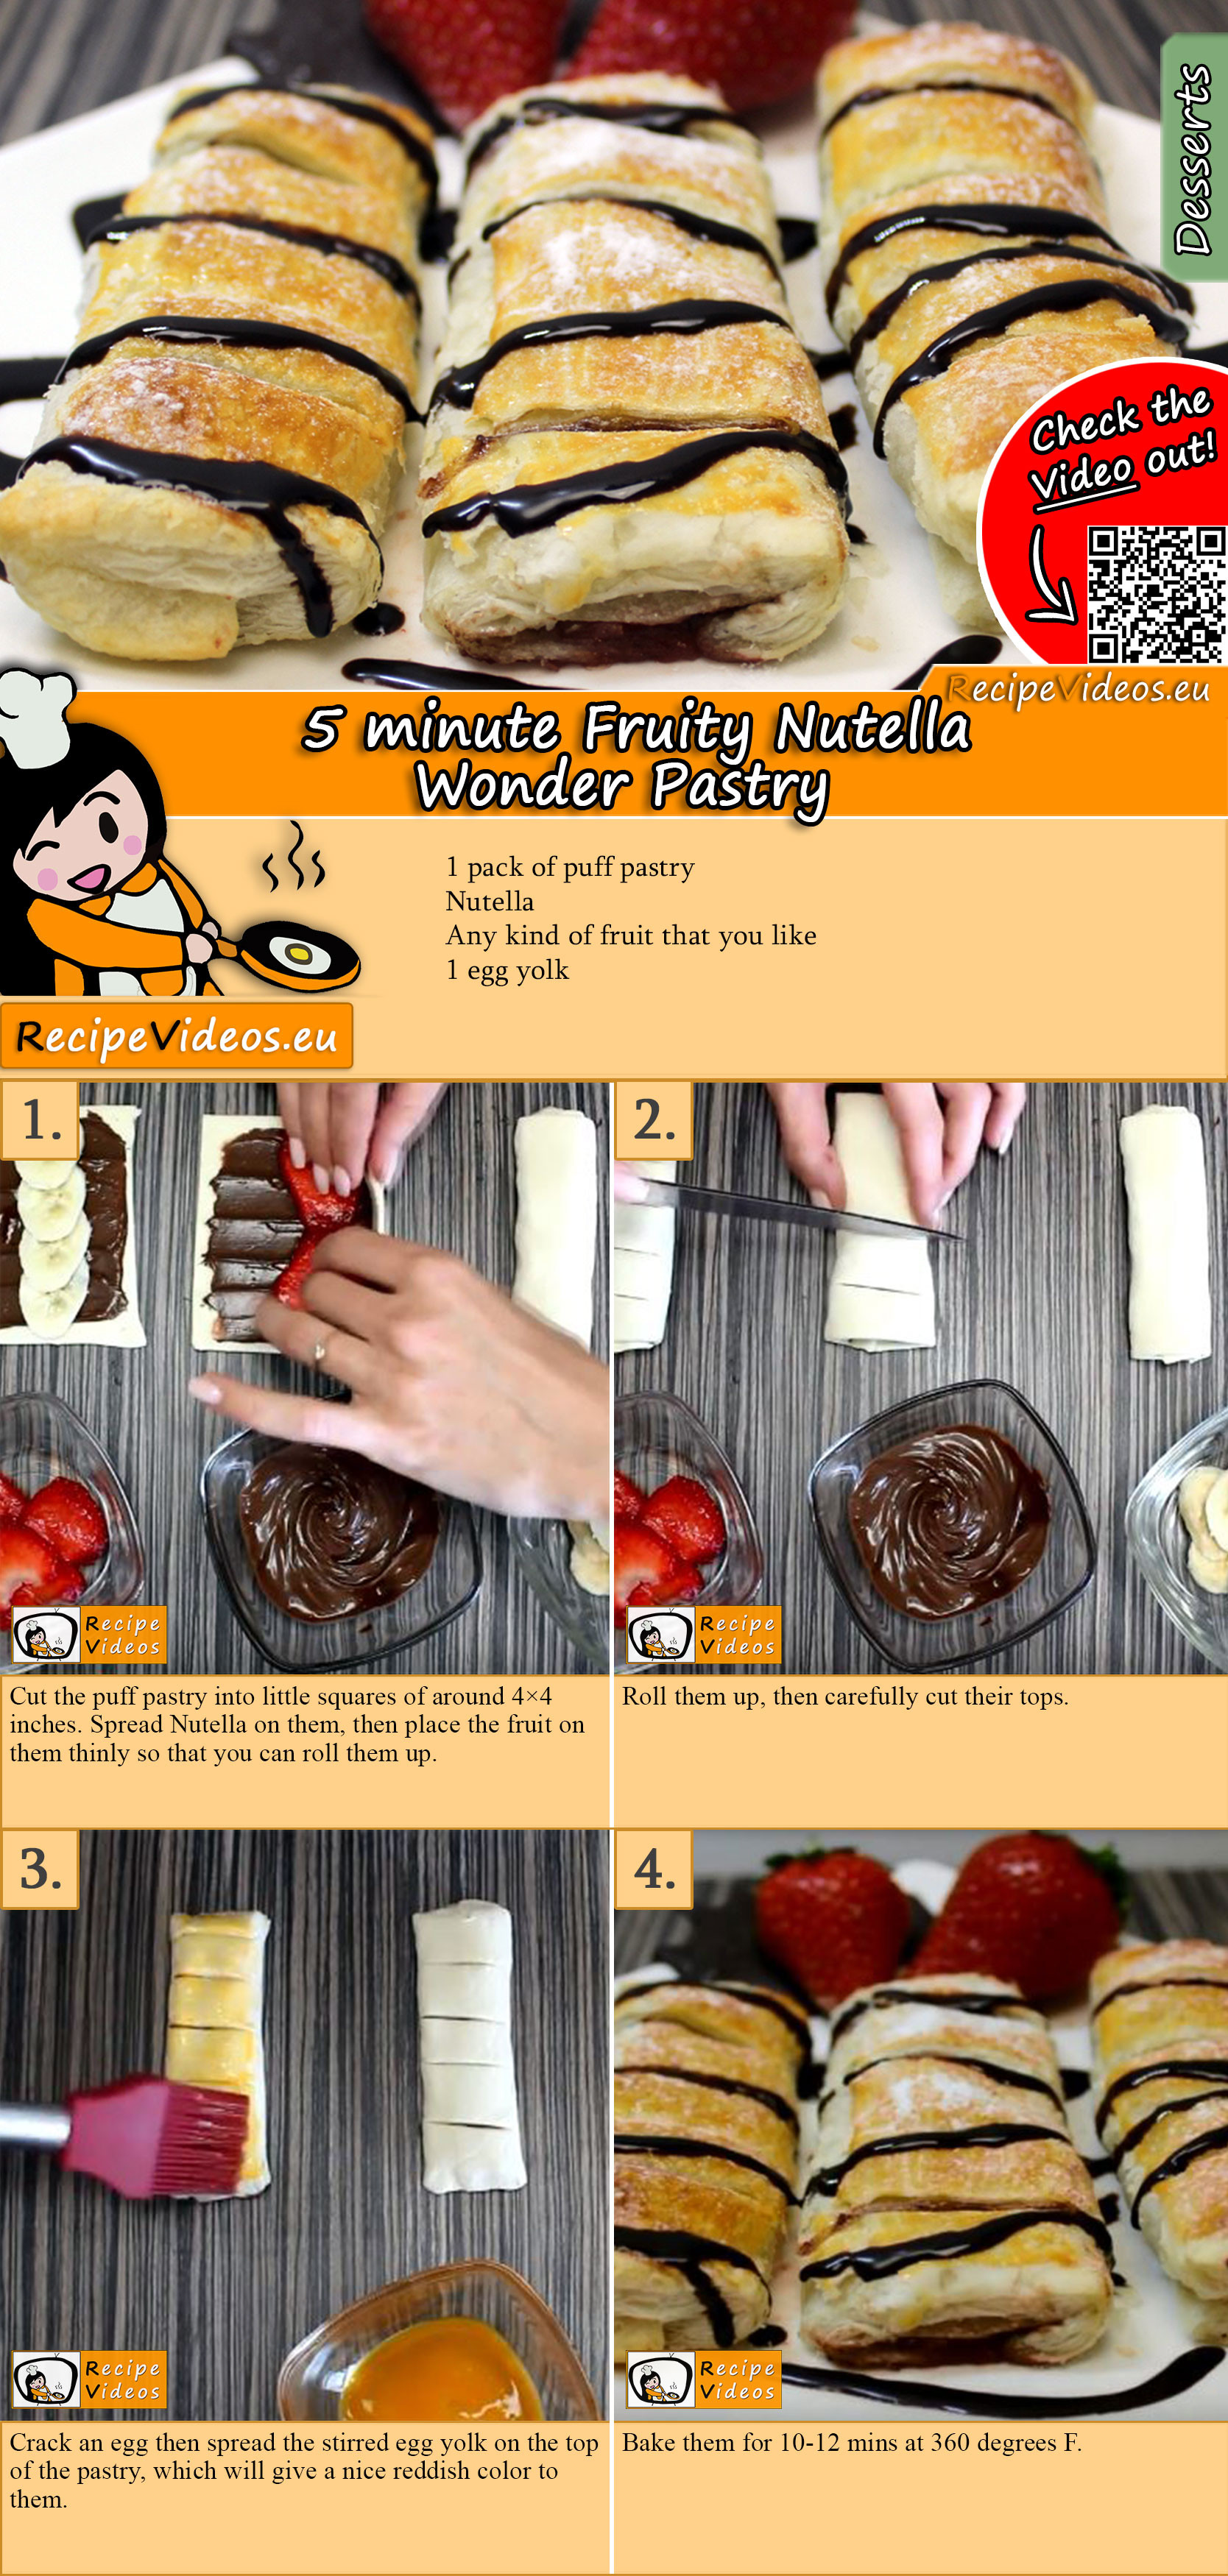 5 minute Fruity Nutella Wonder Pastry recipe with video